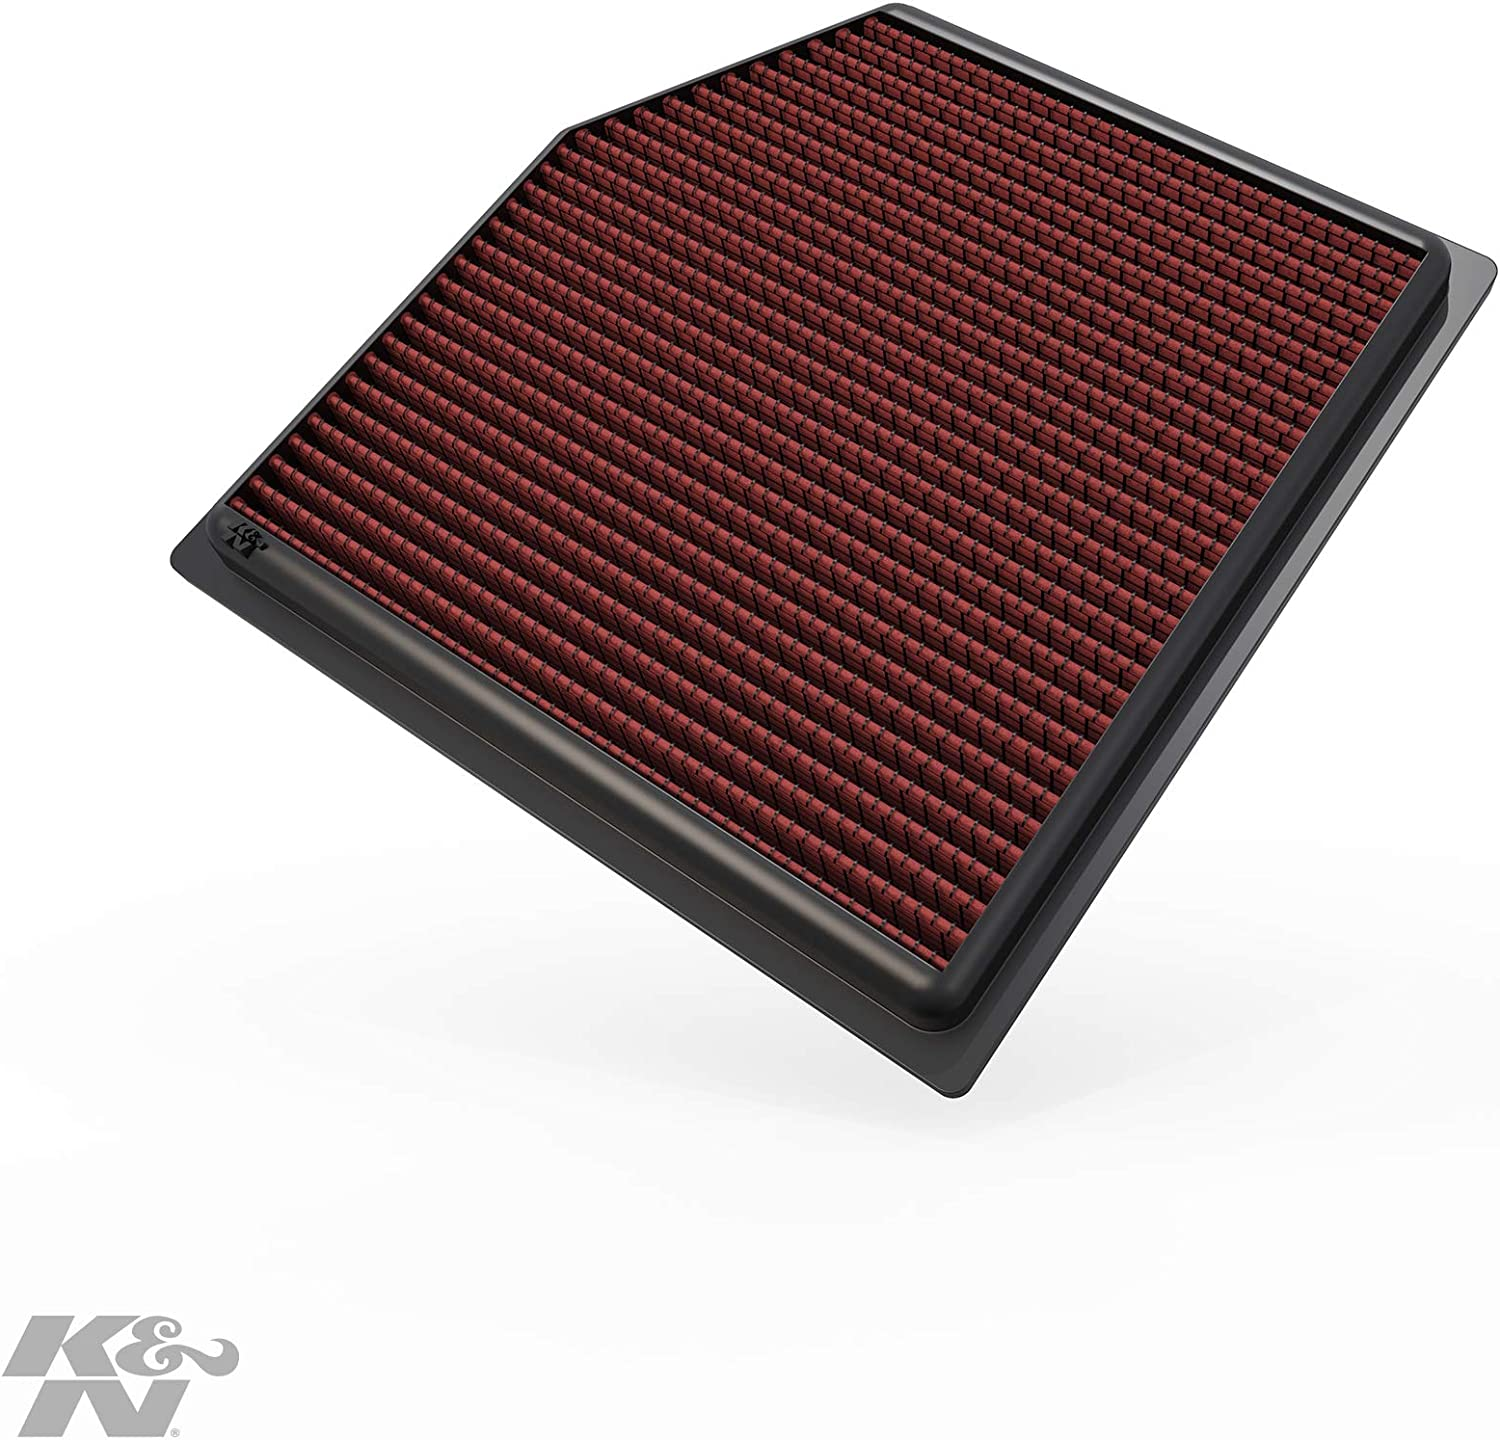 K&N Engine Air Filter: High Performance, Premium, Washable, Replacement Filter: 2010-2019 Lexus/Toyota (GS 300, GS 350, IS 300, IS 350, RC 300, RC 350, Vellfire, Alphard, Mark X), 33-2452